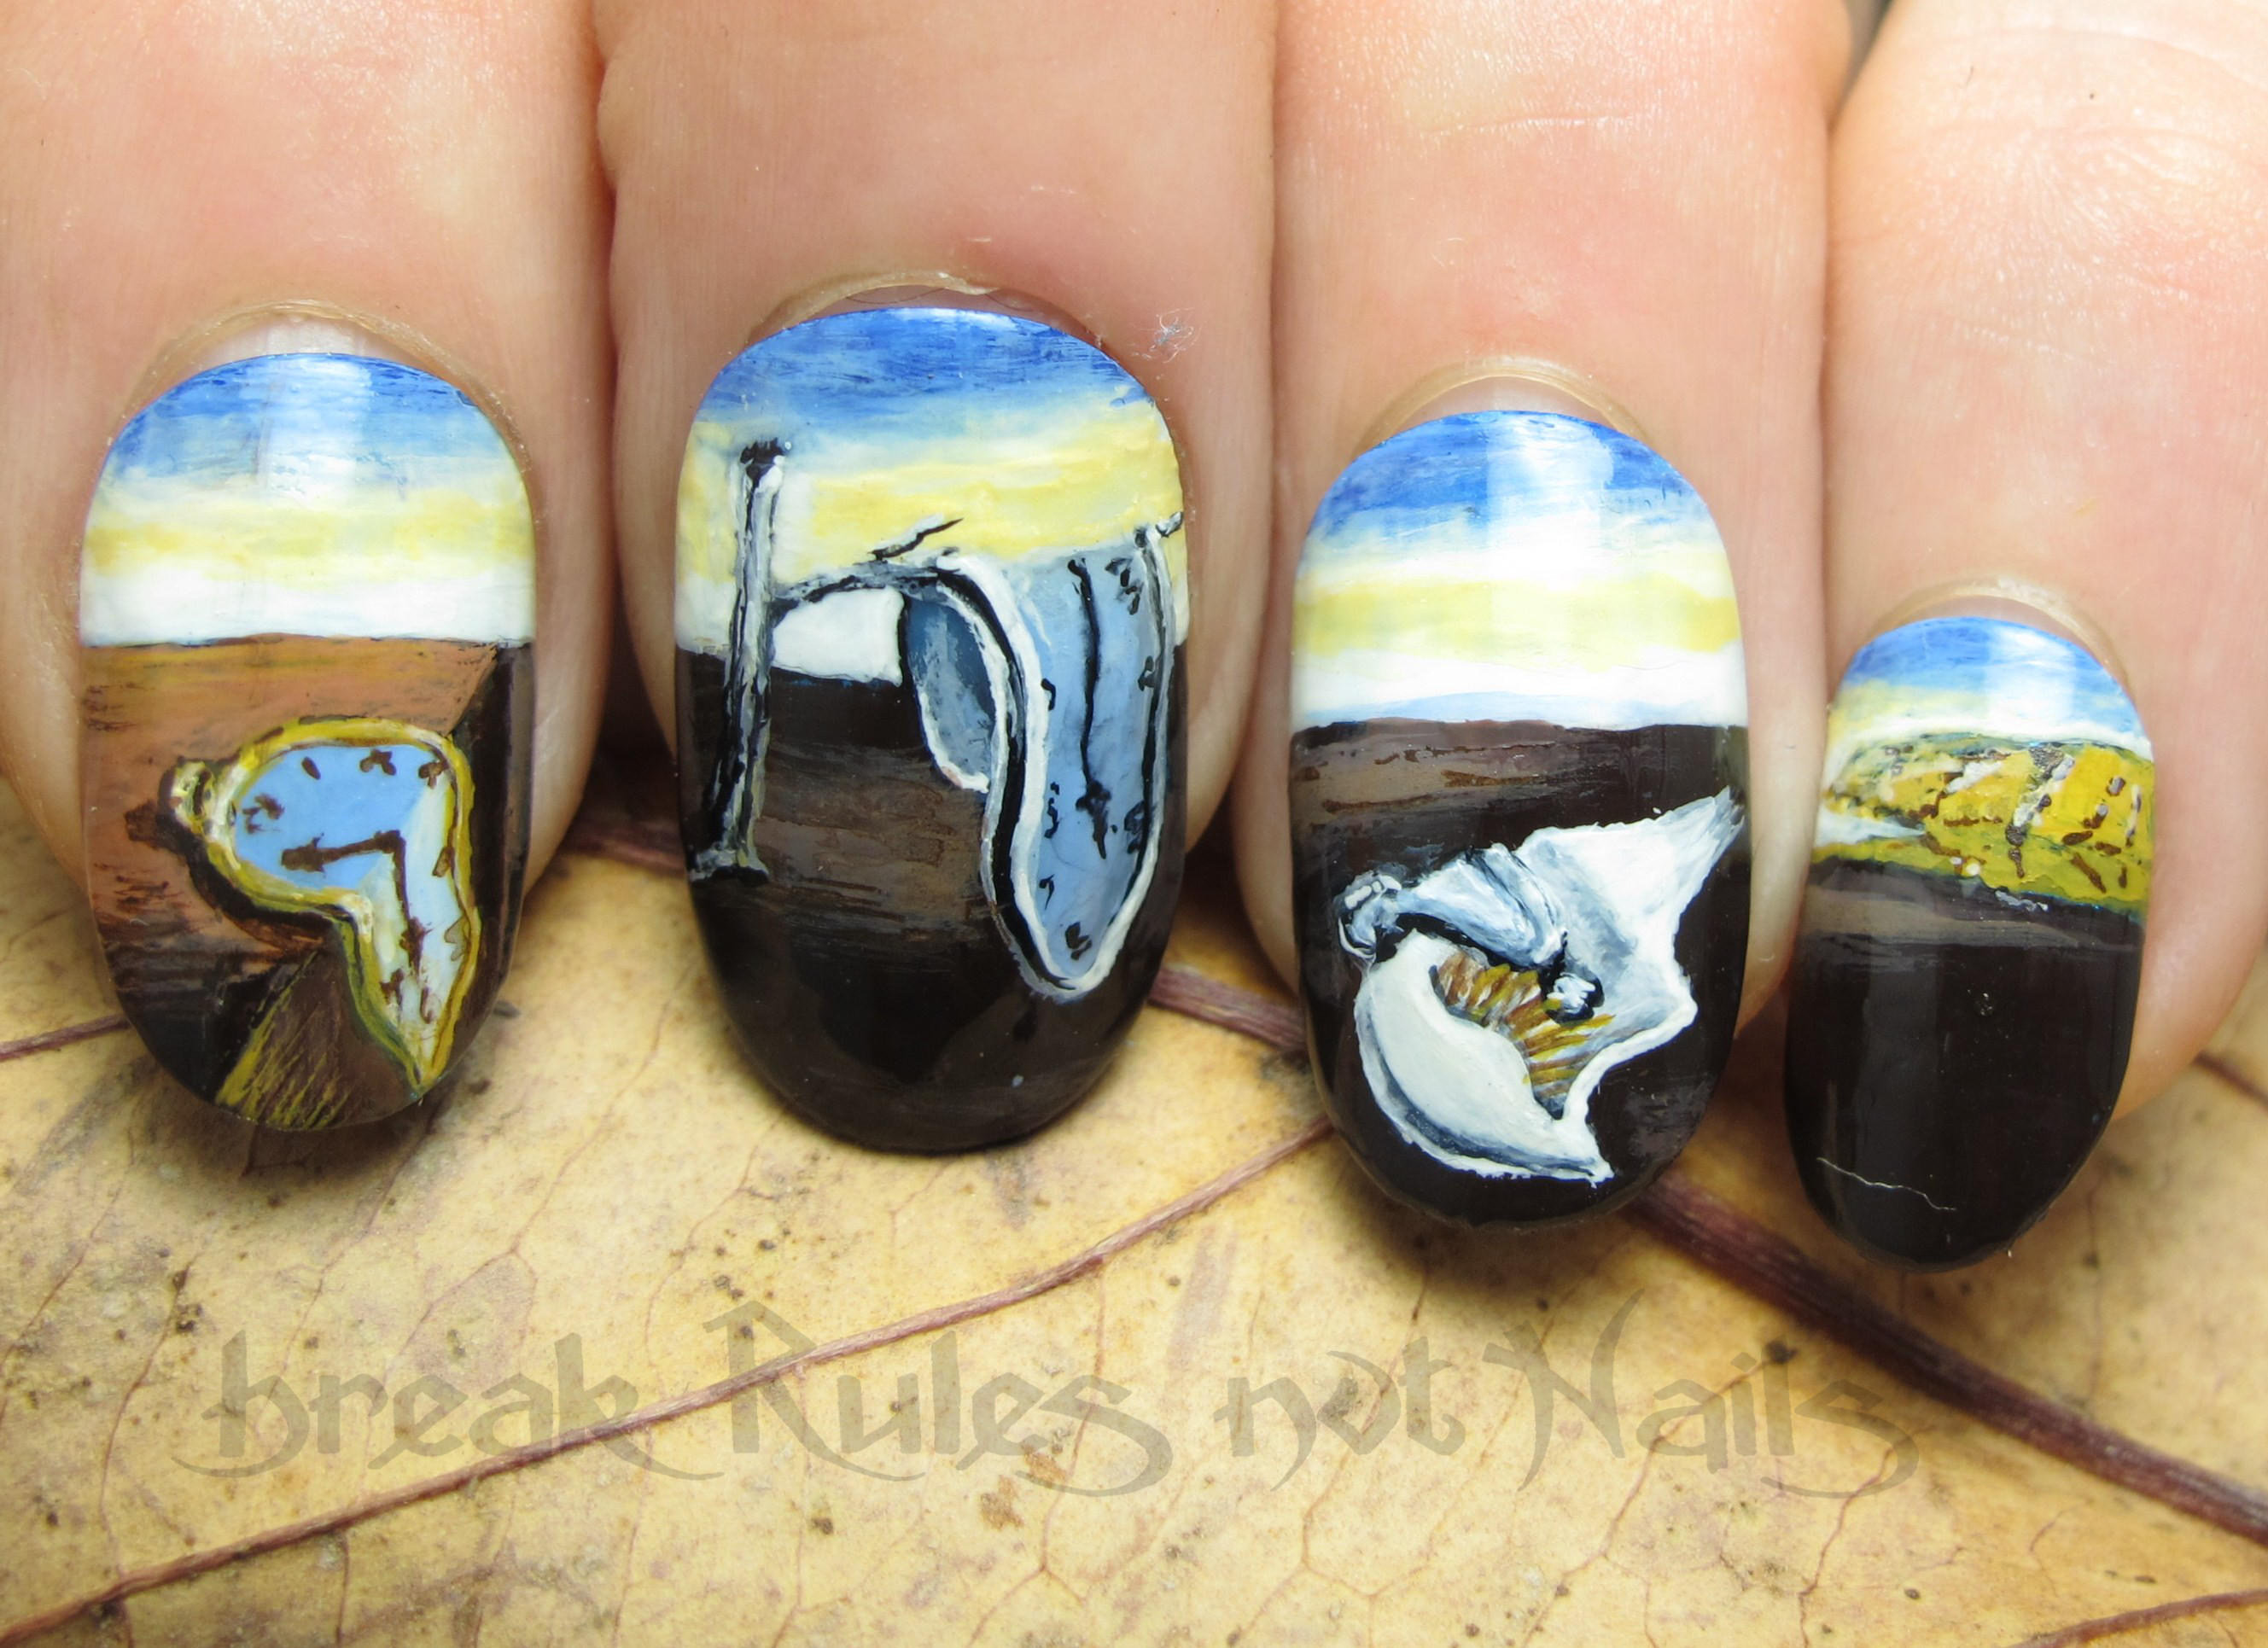 Dali nail art | Break rules, not nails